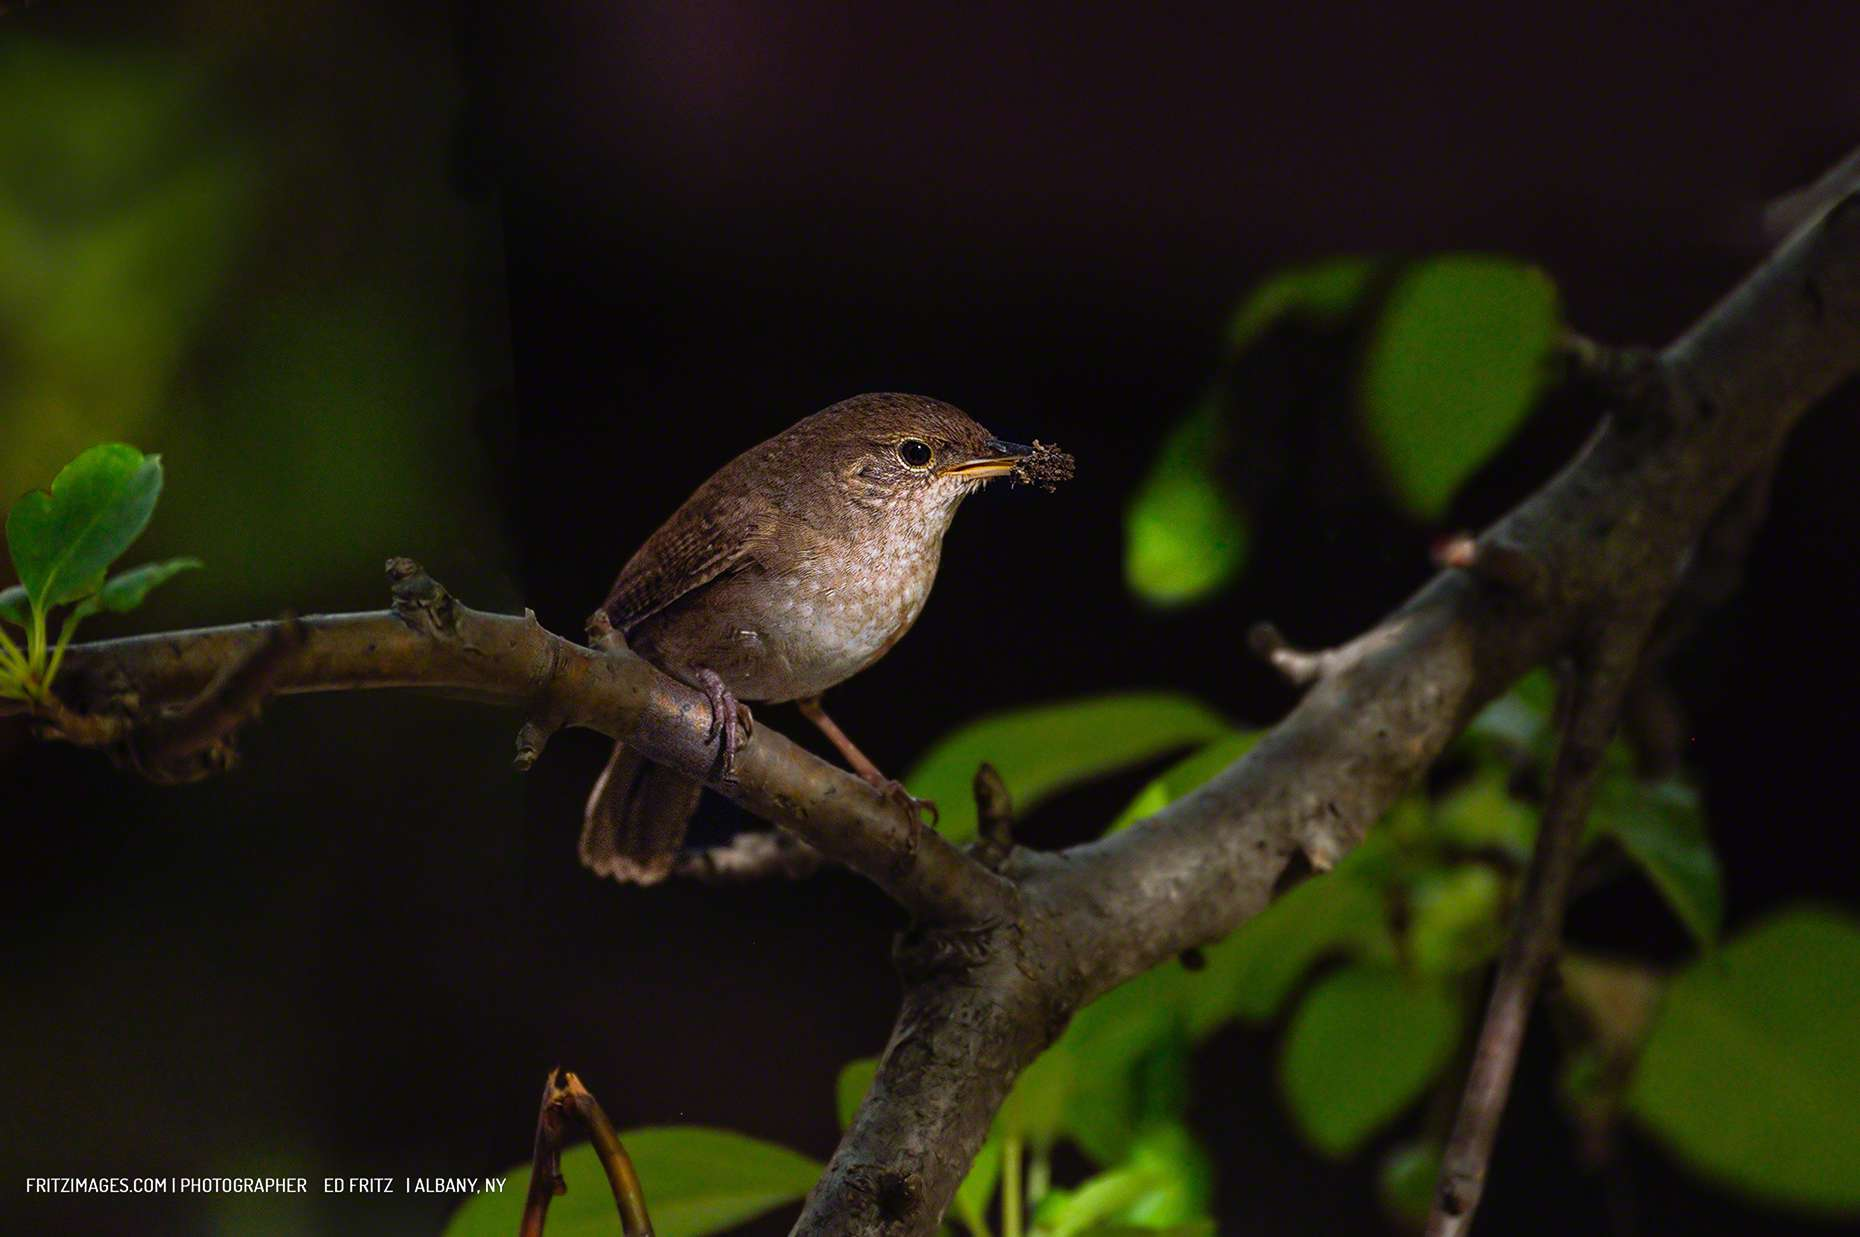 FritzImages | Travel and Outdoor Digital Images | image name = 4 CC 2015 Export FiFM 20150617 0134 NY House Wren 1860 60